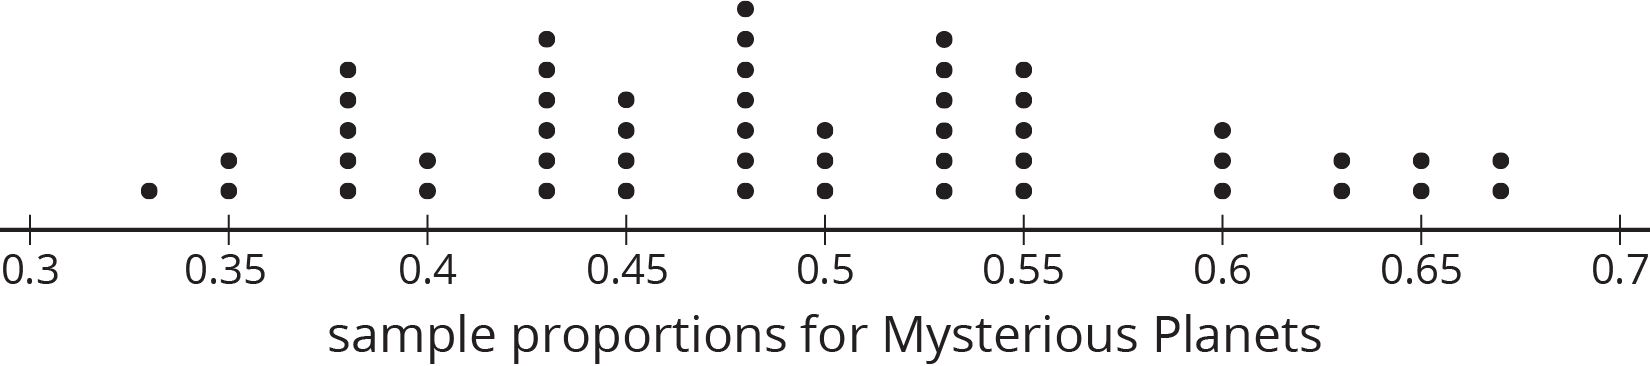 """A dot plot for """"sample proportions for Mysterious Planets"""" with the numbers 0 point 3 through 0 point 7, in increments of 0 point 5, indicated. The data are as follows:  0 point 3 3, 1 dot. 0 point 3 5, 2 dots. 0 point 3 8, 5 dots. 0 point 4, 2 dots. 0 point 4 3, 6 dots. 0 point 4 5, 4 dots. 0 point 4 8, 7 dots. 0 point 5, 3 dots. 0 point 5 3, 6 dots. 0 point 5 5, 5 dots. 0 point 6, 3 dots. 0 point 6 3, 2 dots. 0 point 6 5, 2 dots. 0 point 6 7, 2 dots."""